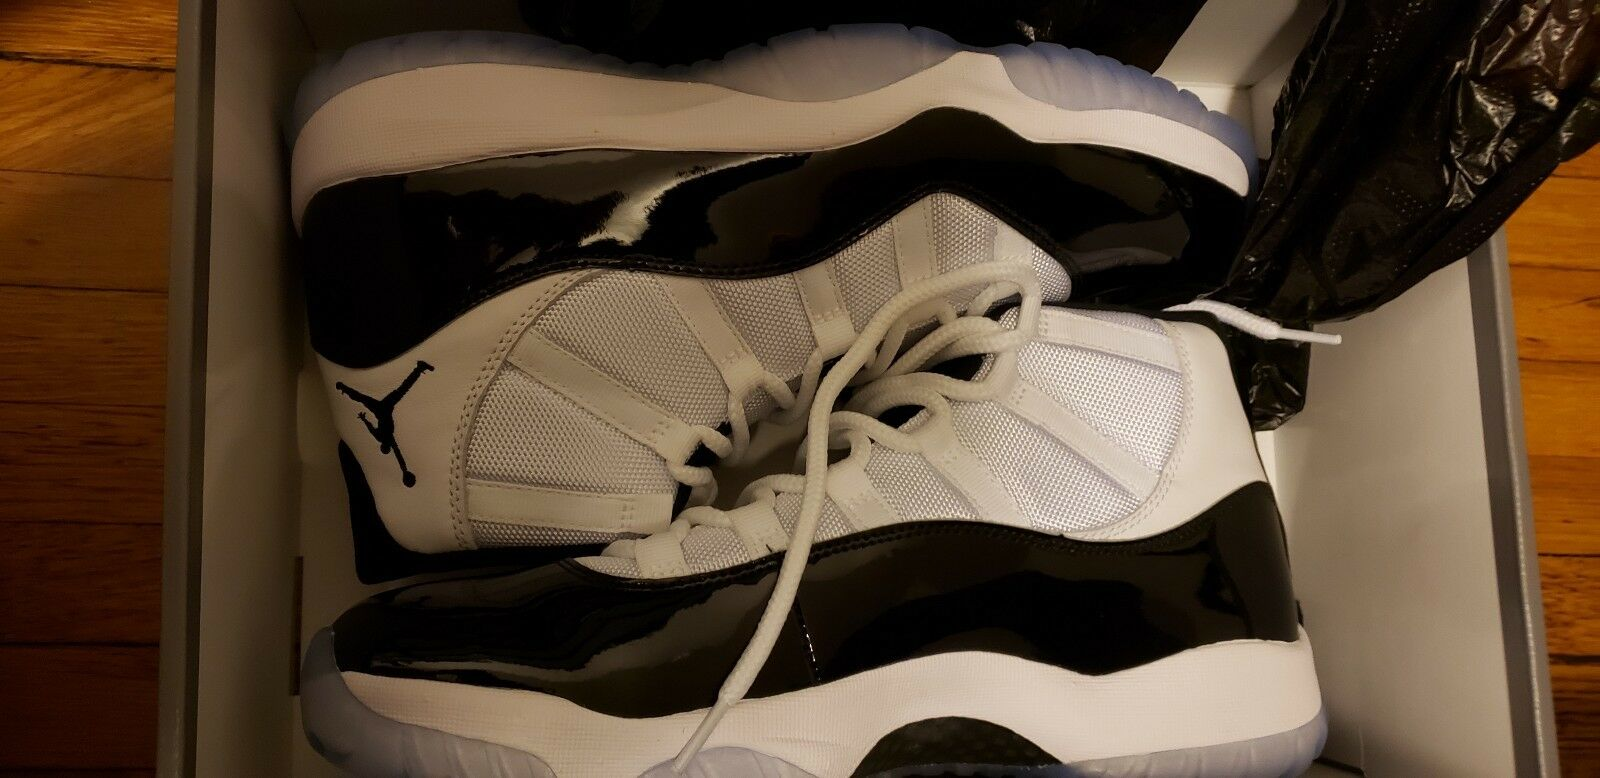 Air Jordan 11 Concord Retro XI OG White Black 378037  with a receipt from Nike